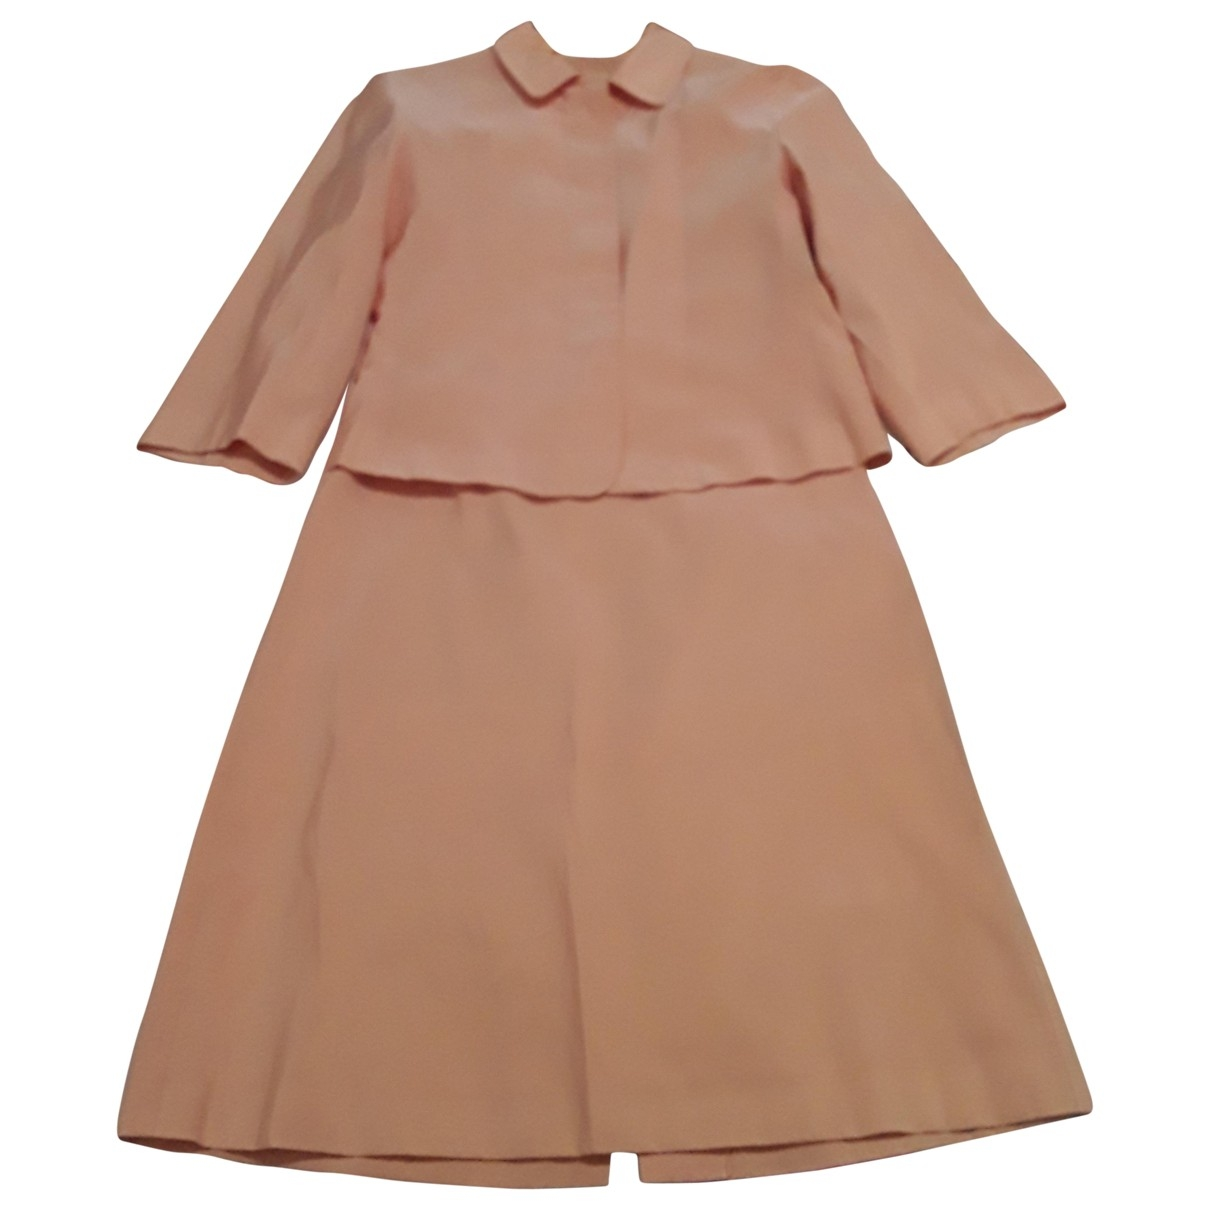 Max & Co \N Pink dress for Women 38 IT